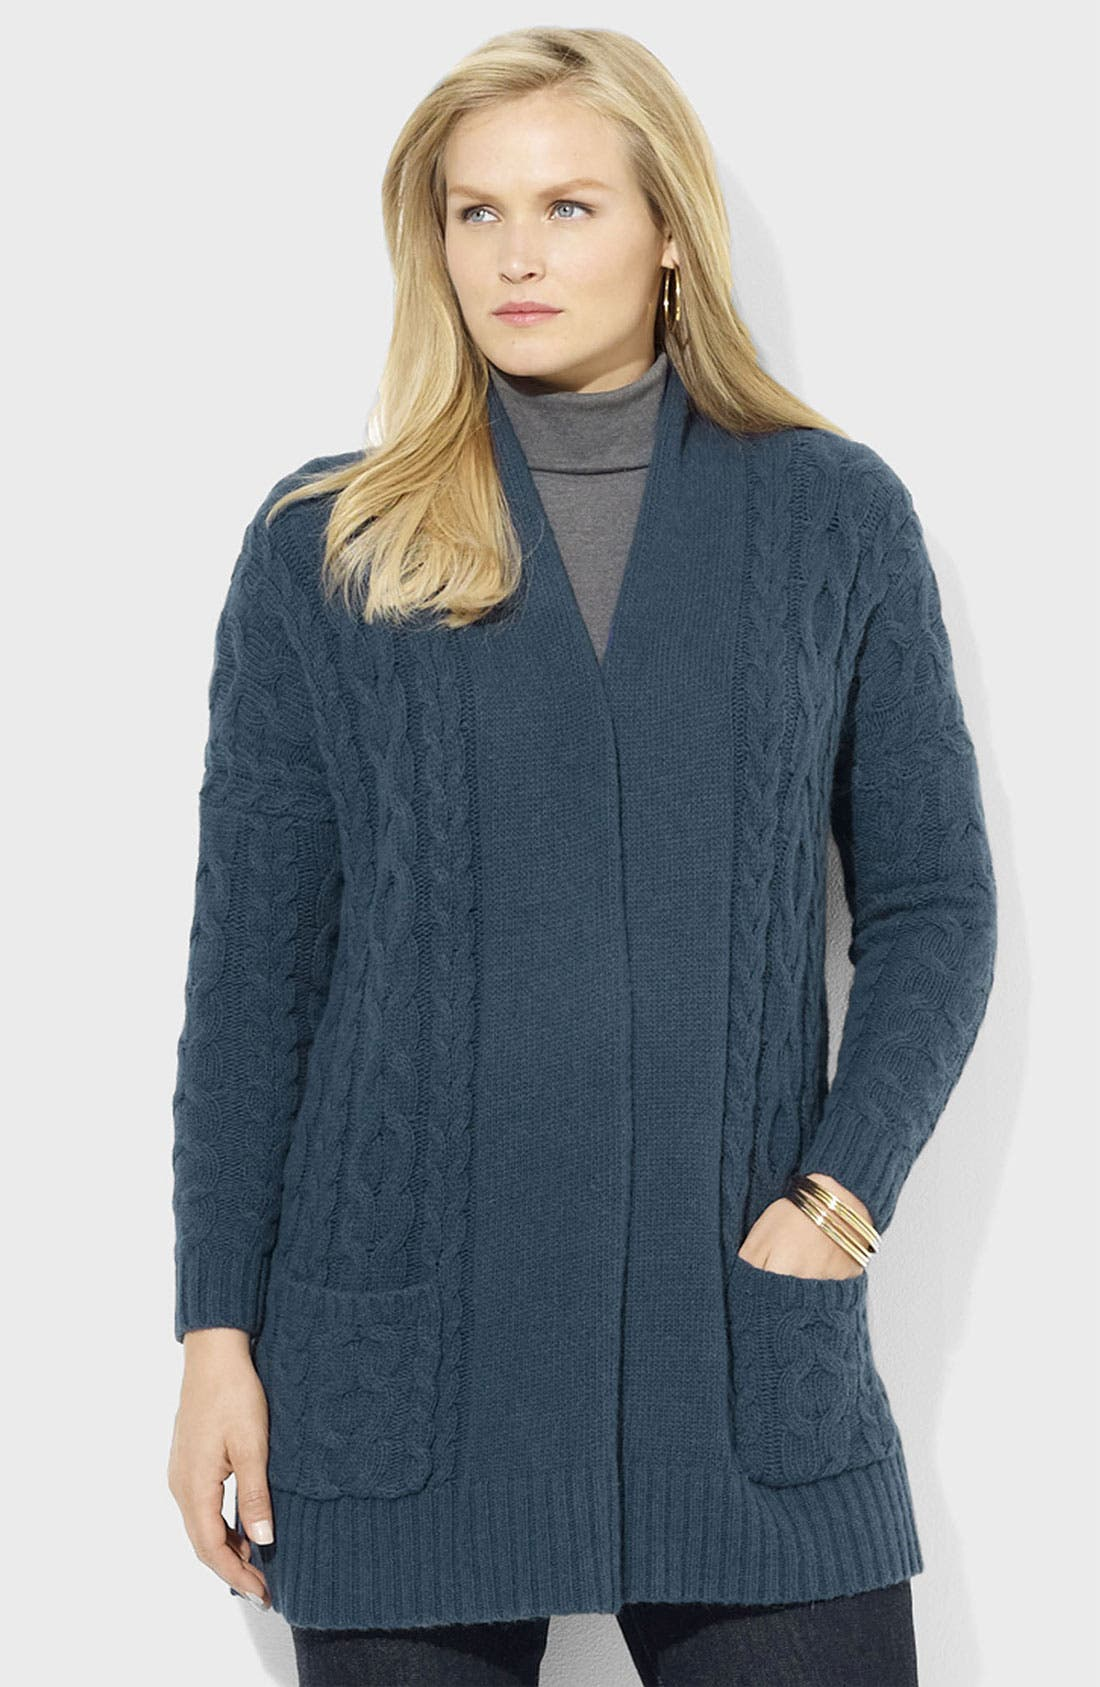 Alternate Image 1 Selected - Lauren Ralph Lauren Open Cable Cardigan (Plus)